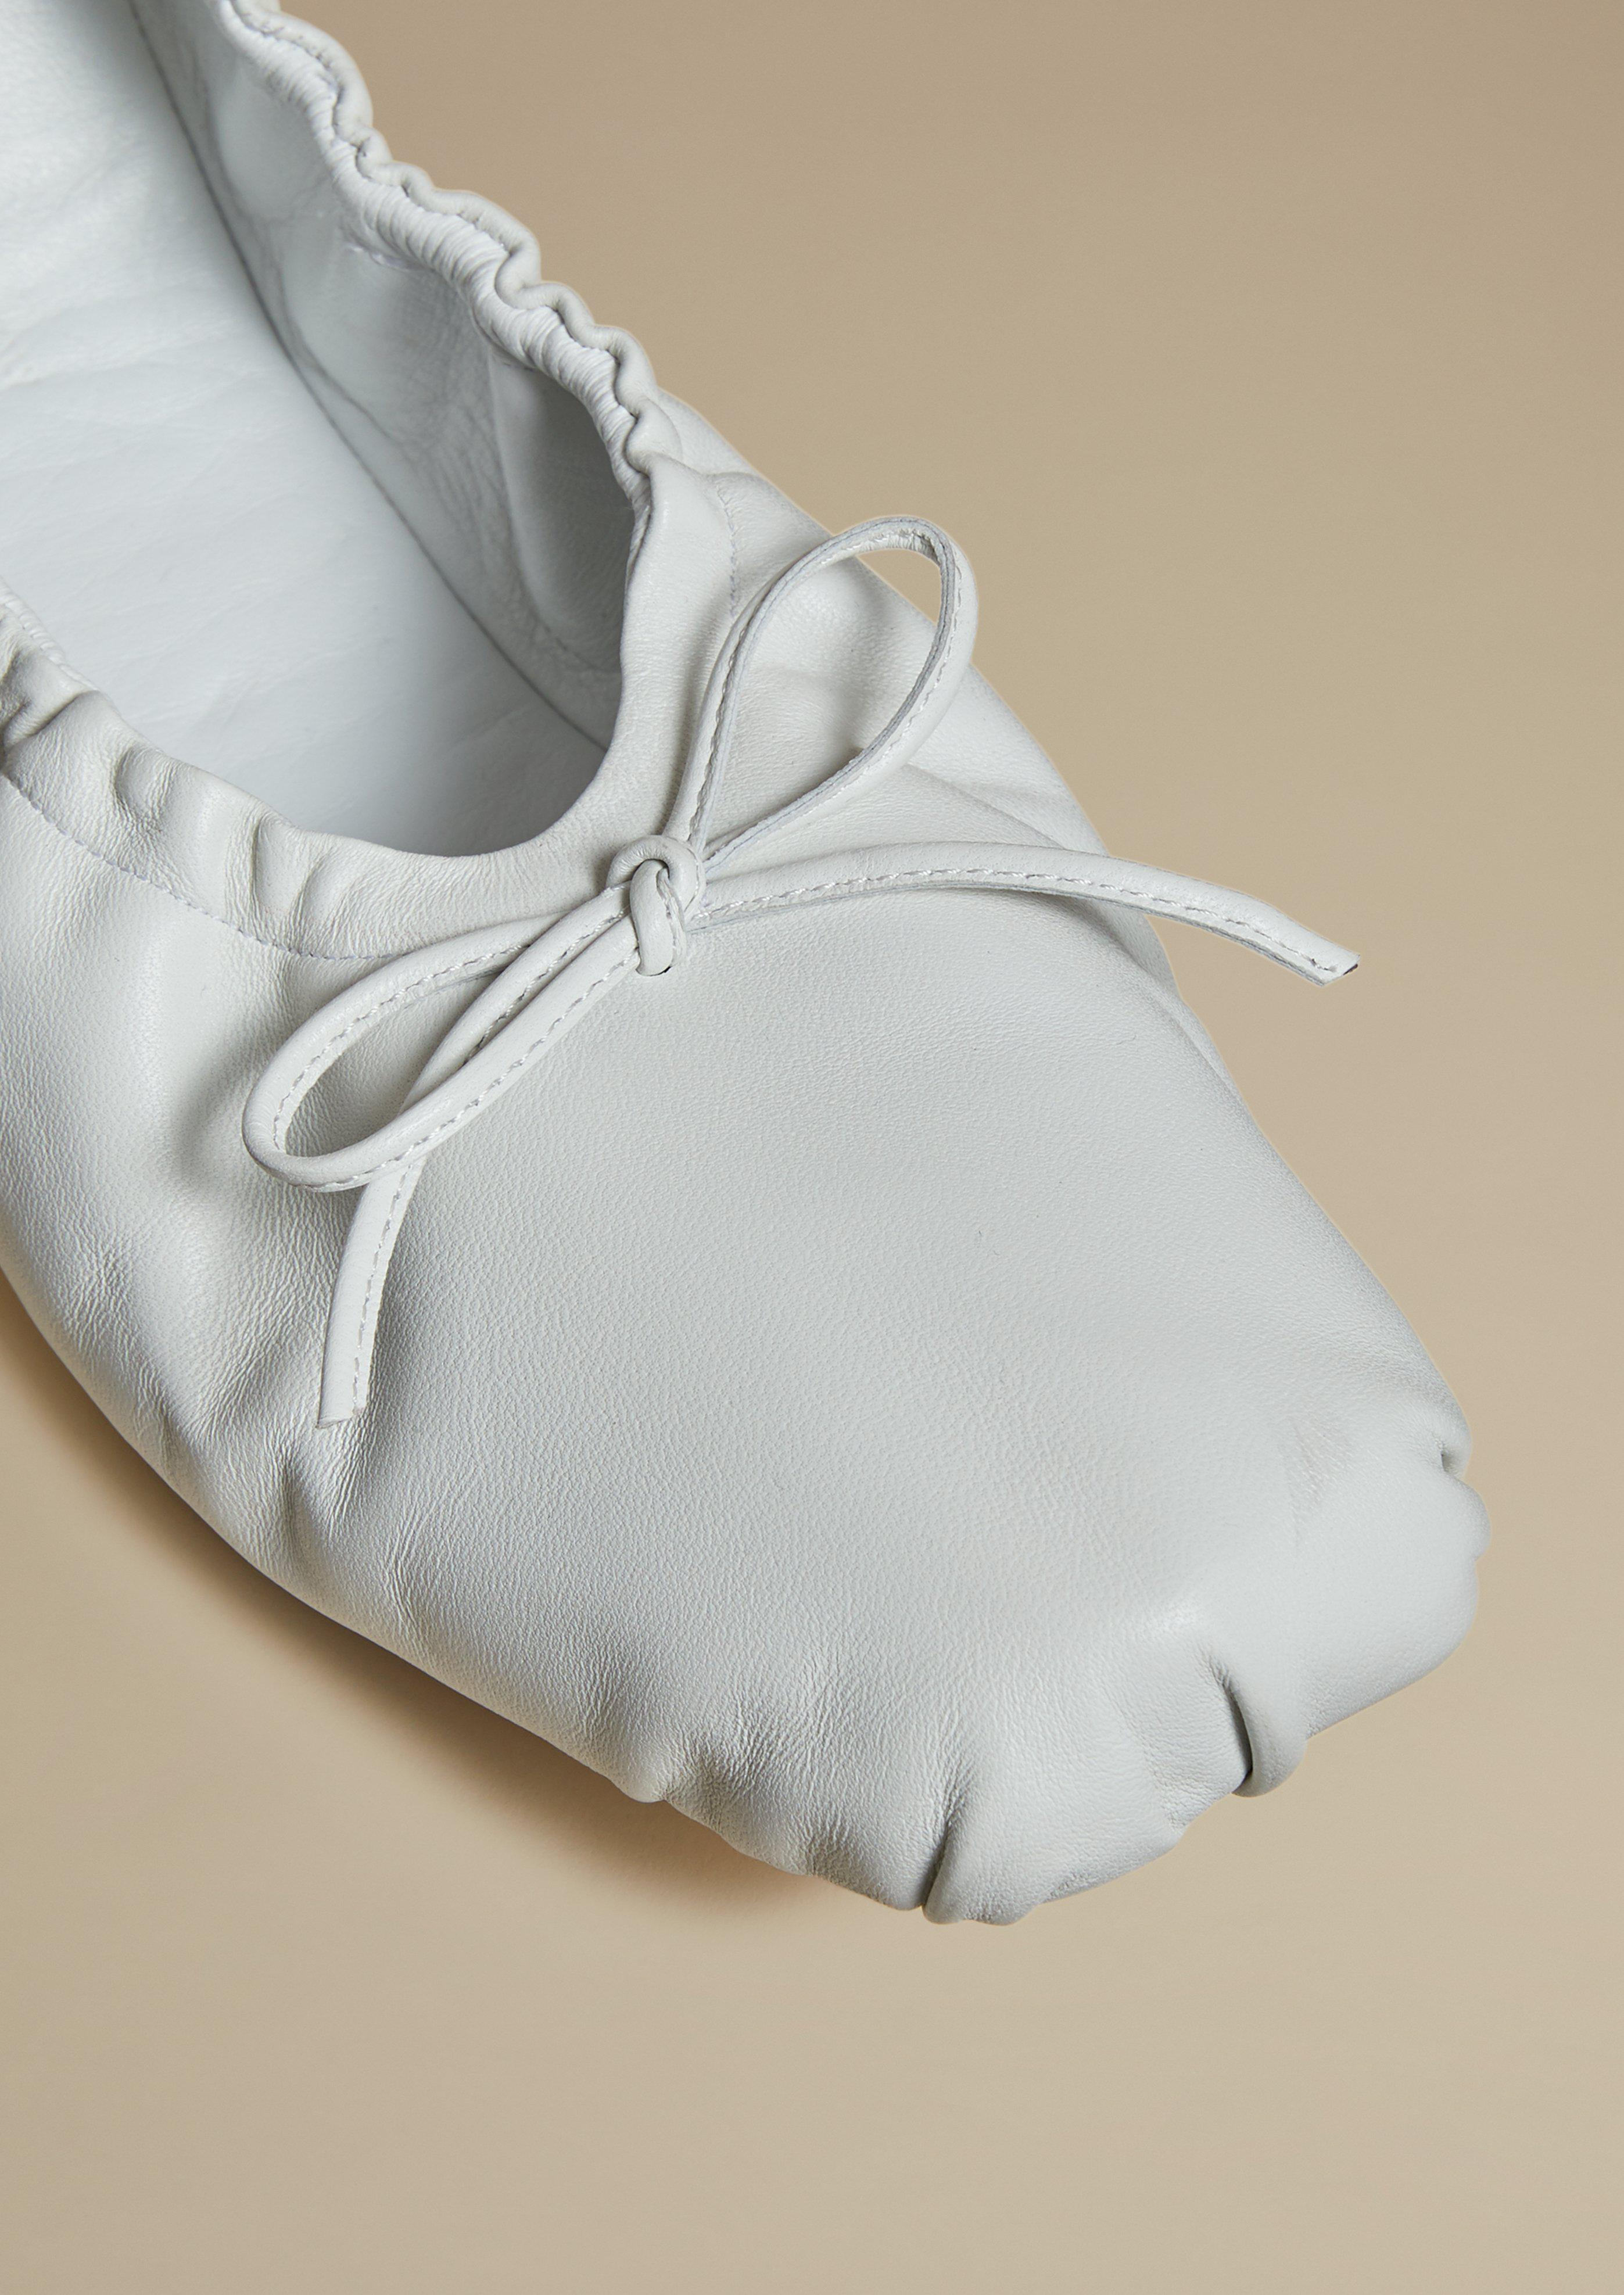 The Ashland Ballet Flat in White Leather 2